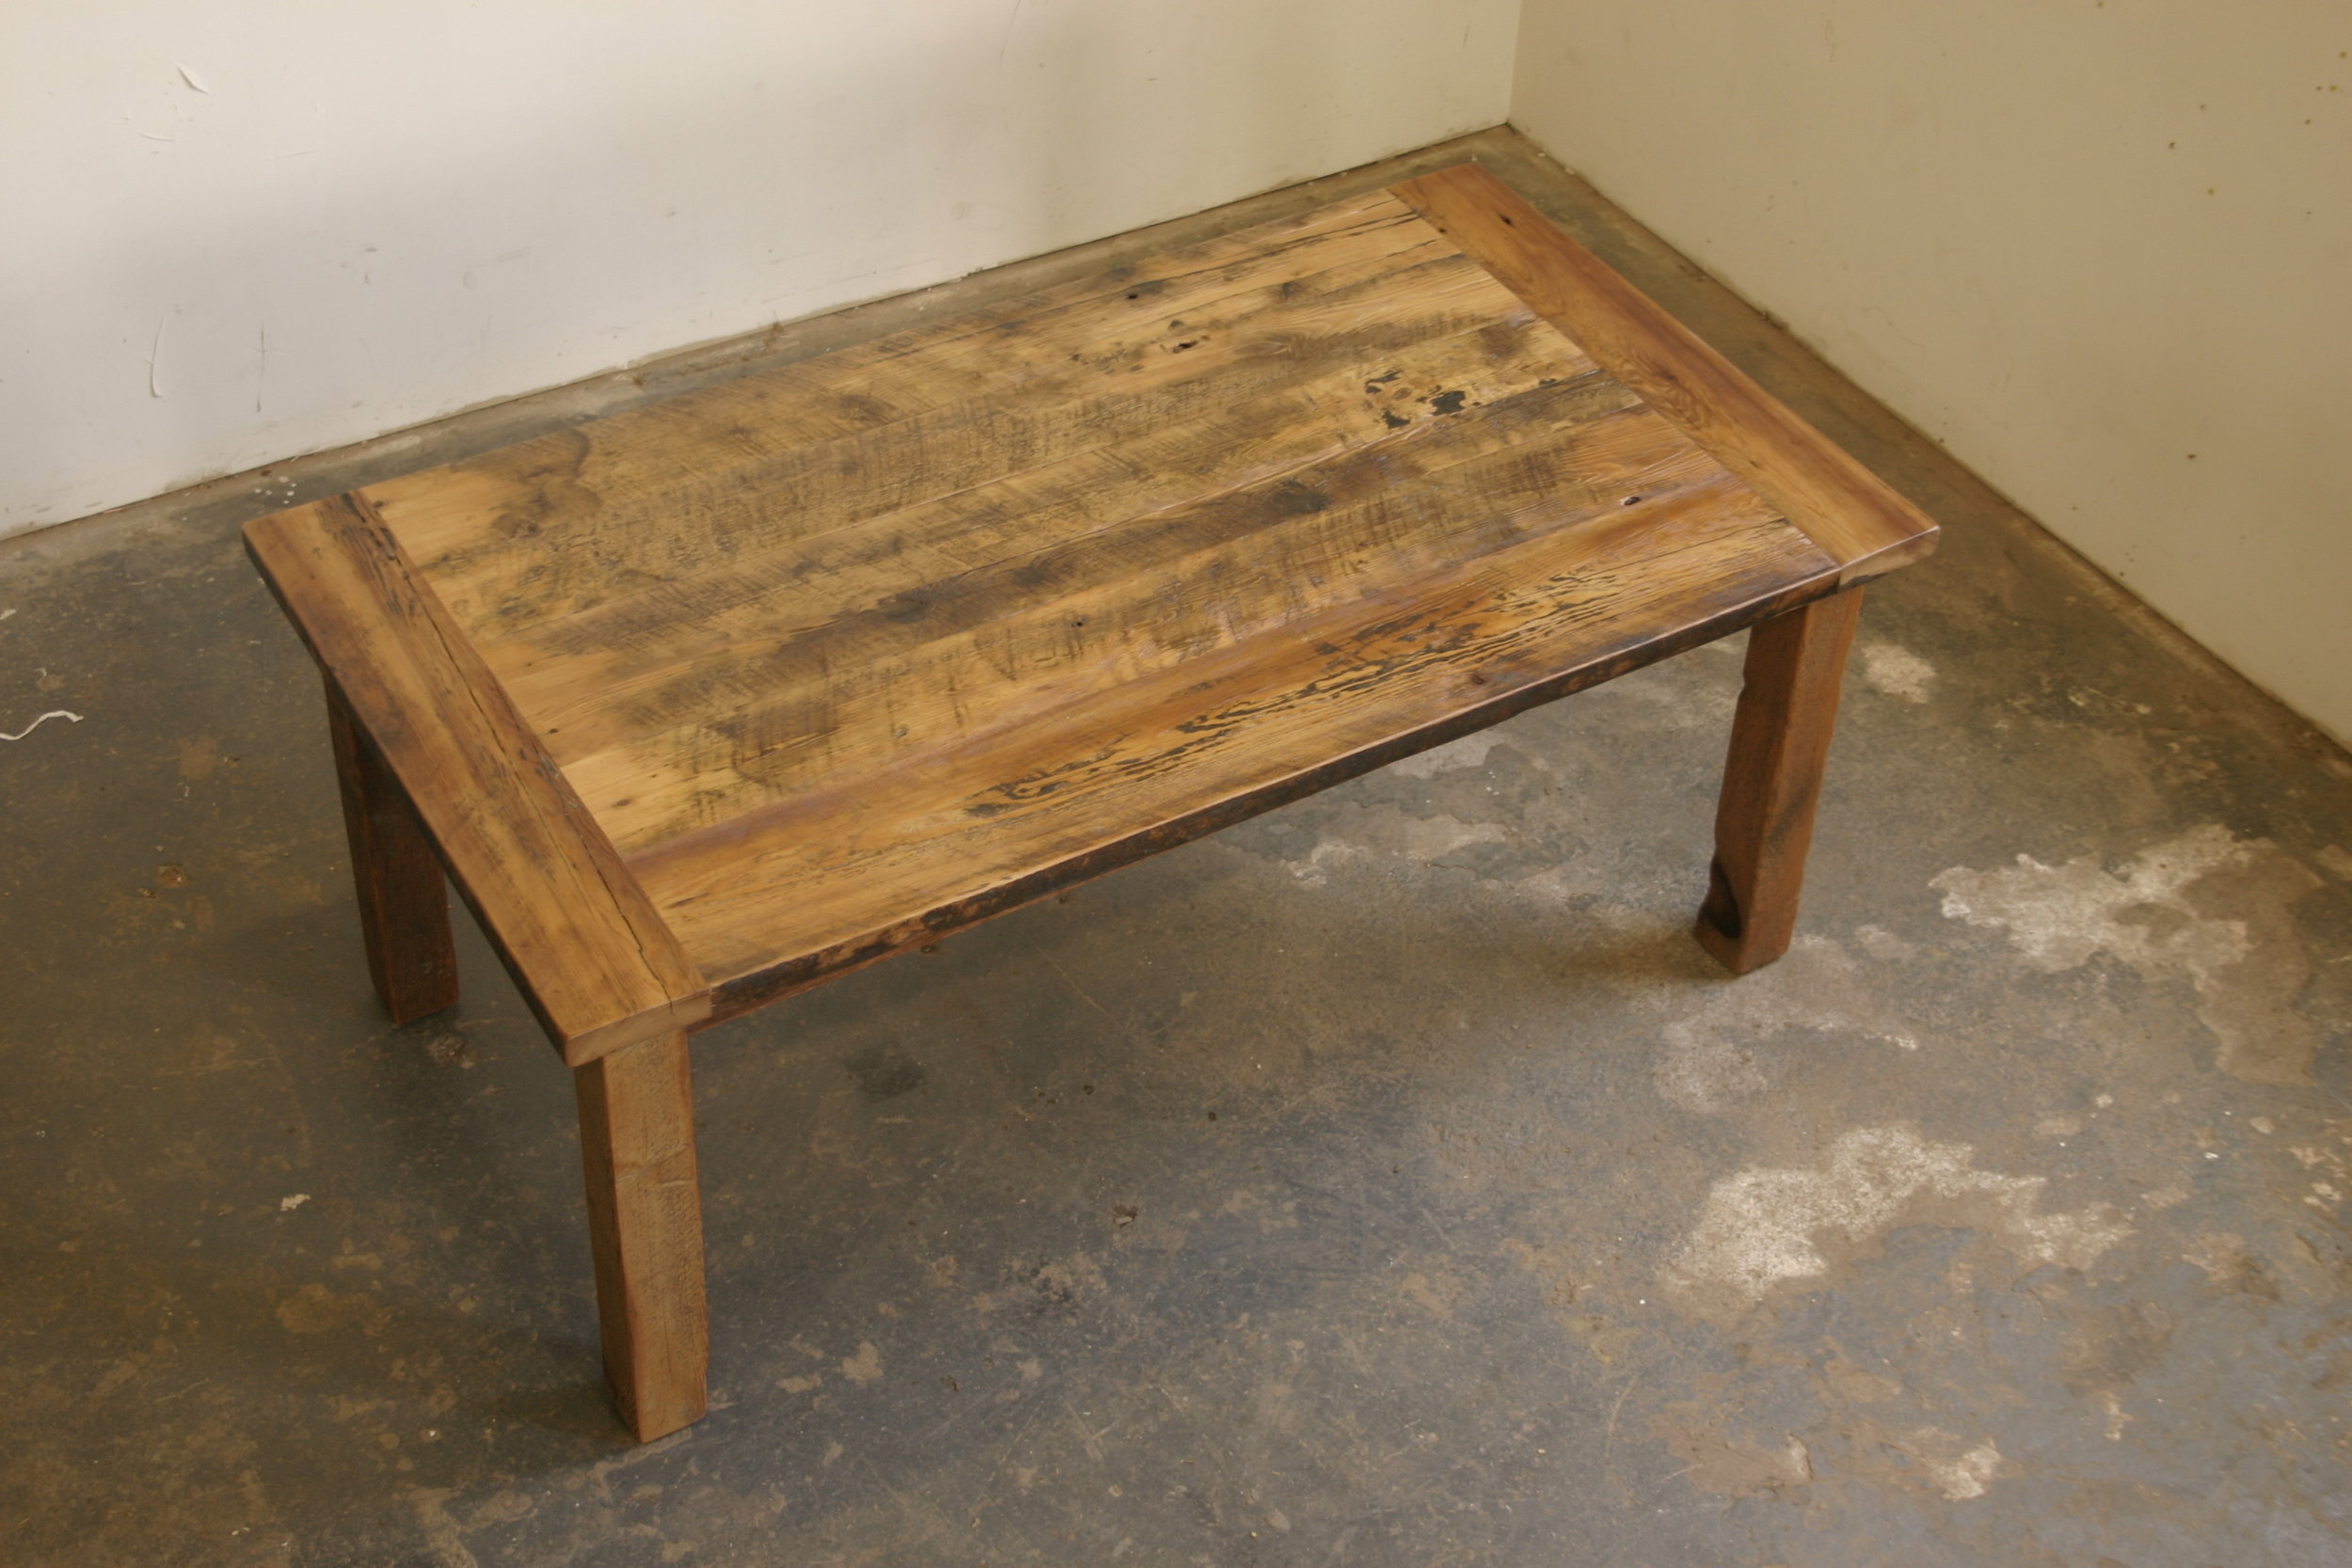 Reclaimed Hemlock Top with Matching Post Base